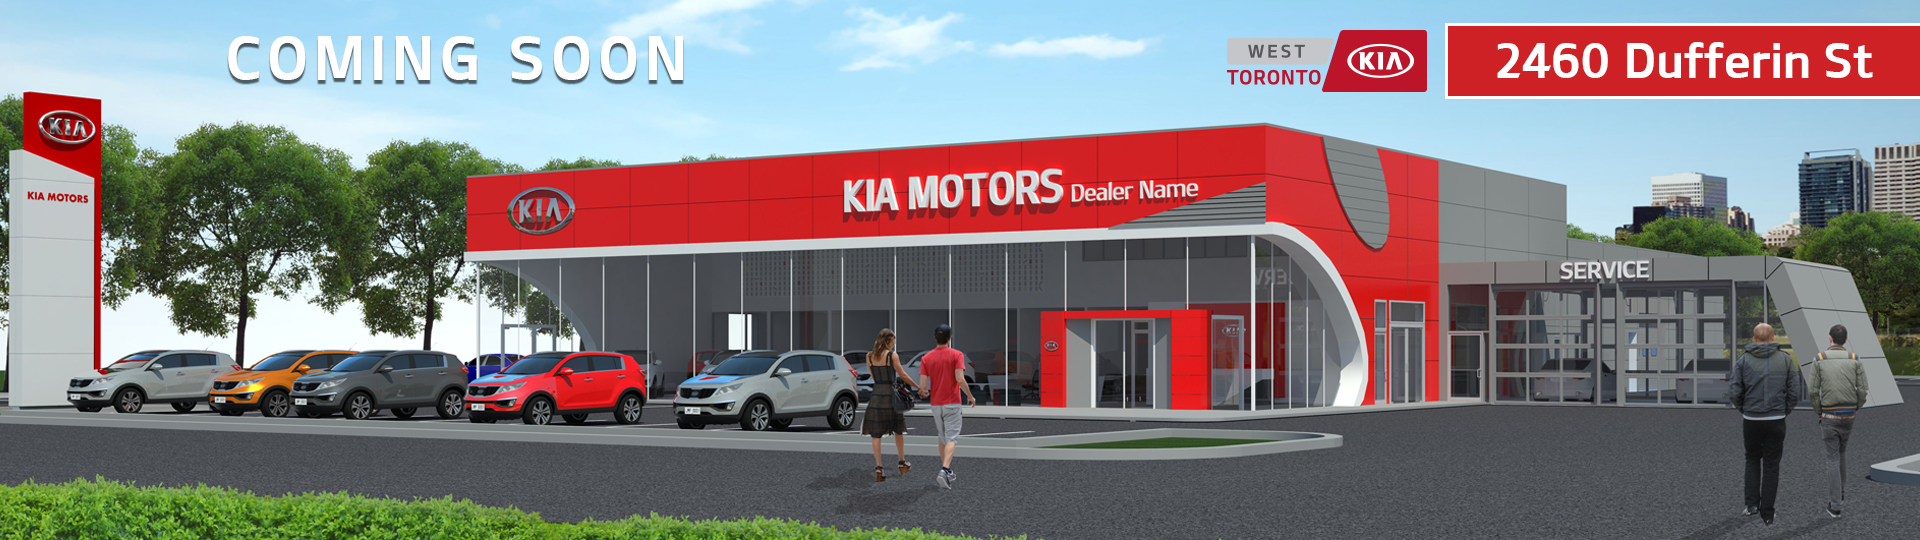 Coming Soon: West Toronto Kia